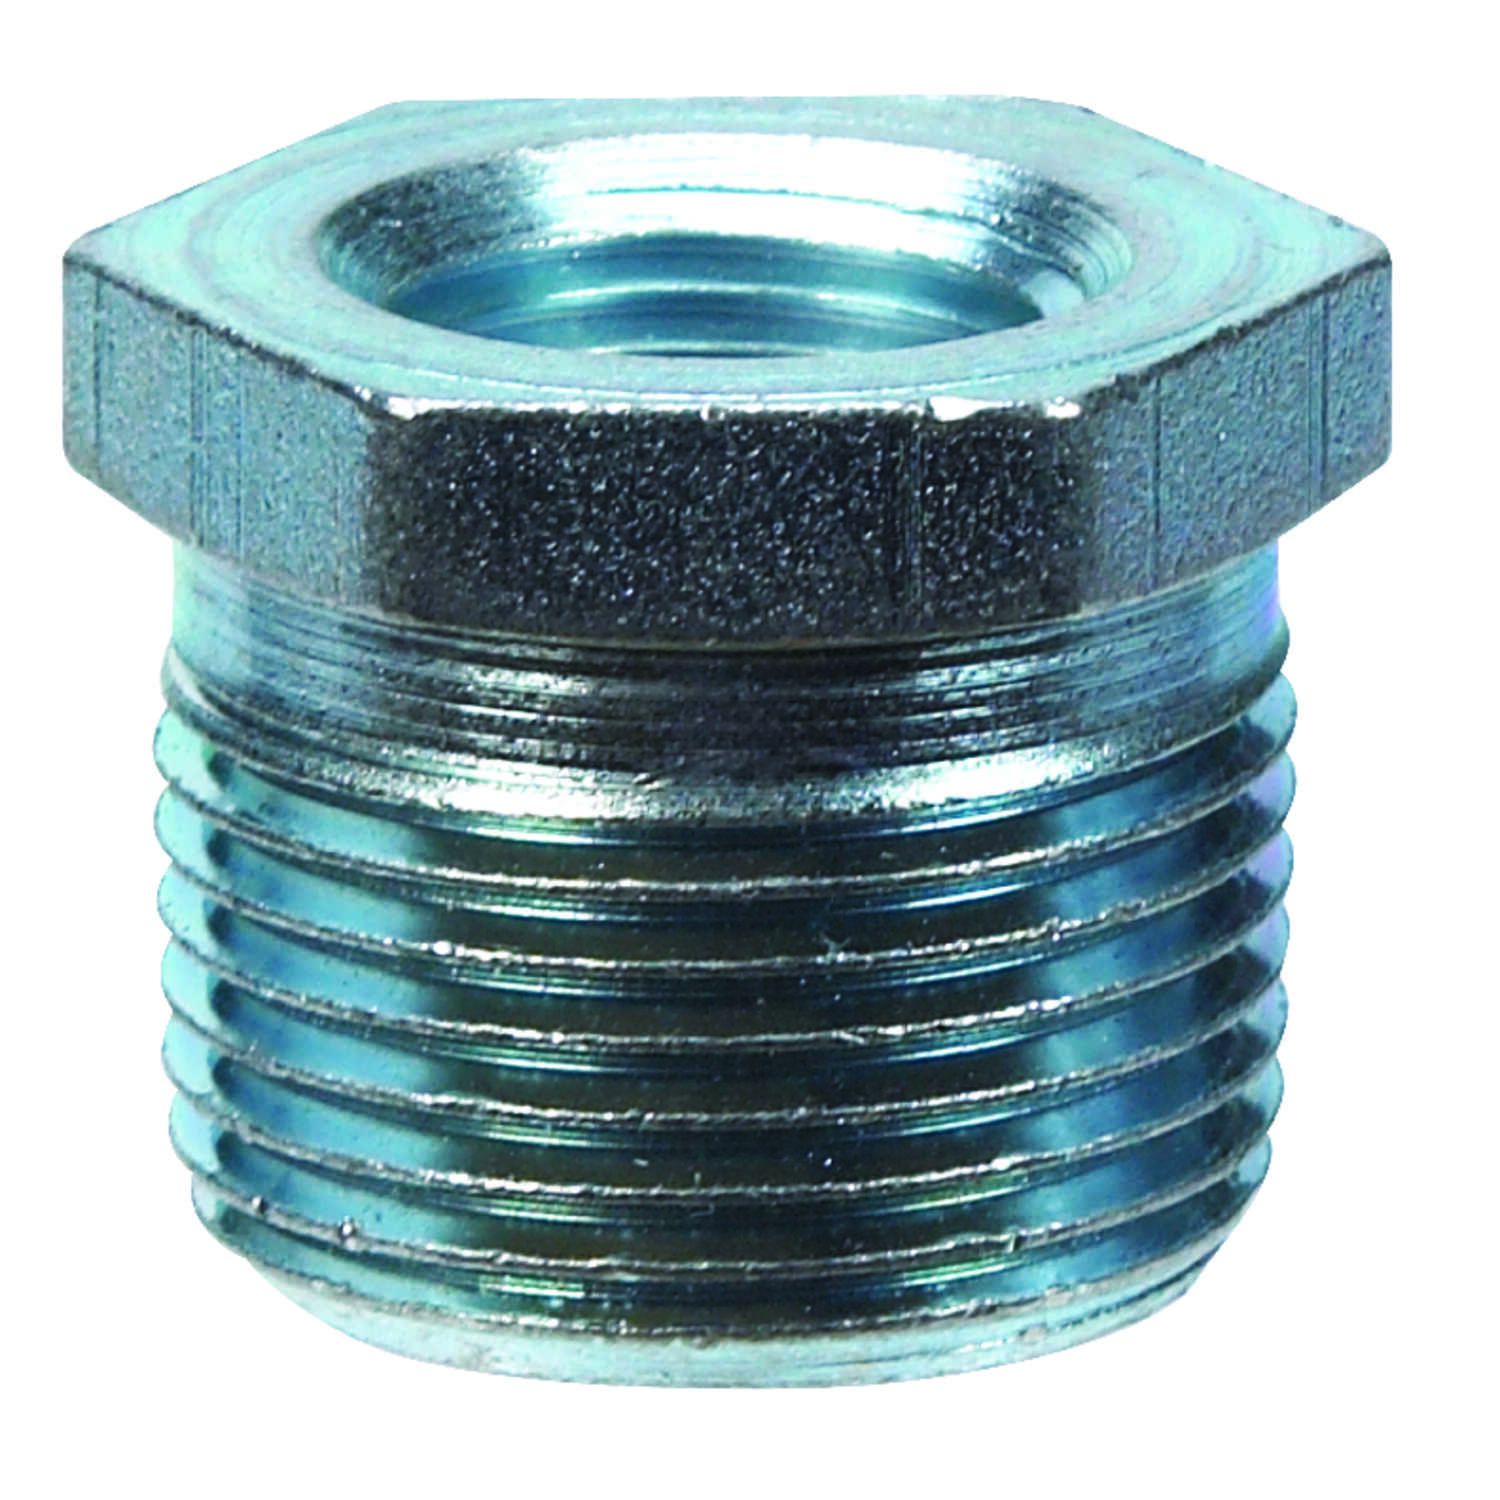 Billco  1/2 in. MPT  3/8 in. Dia. MPT  Galvanized Steel  Hex Bushing